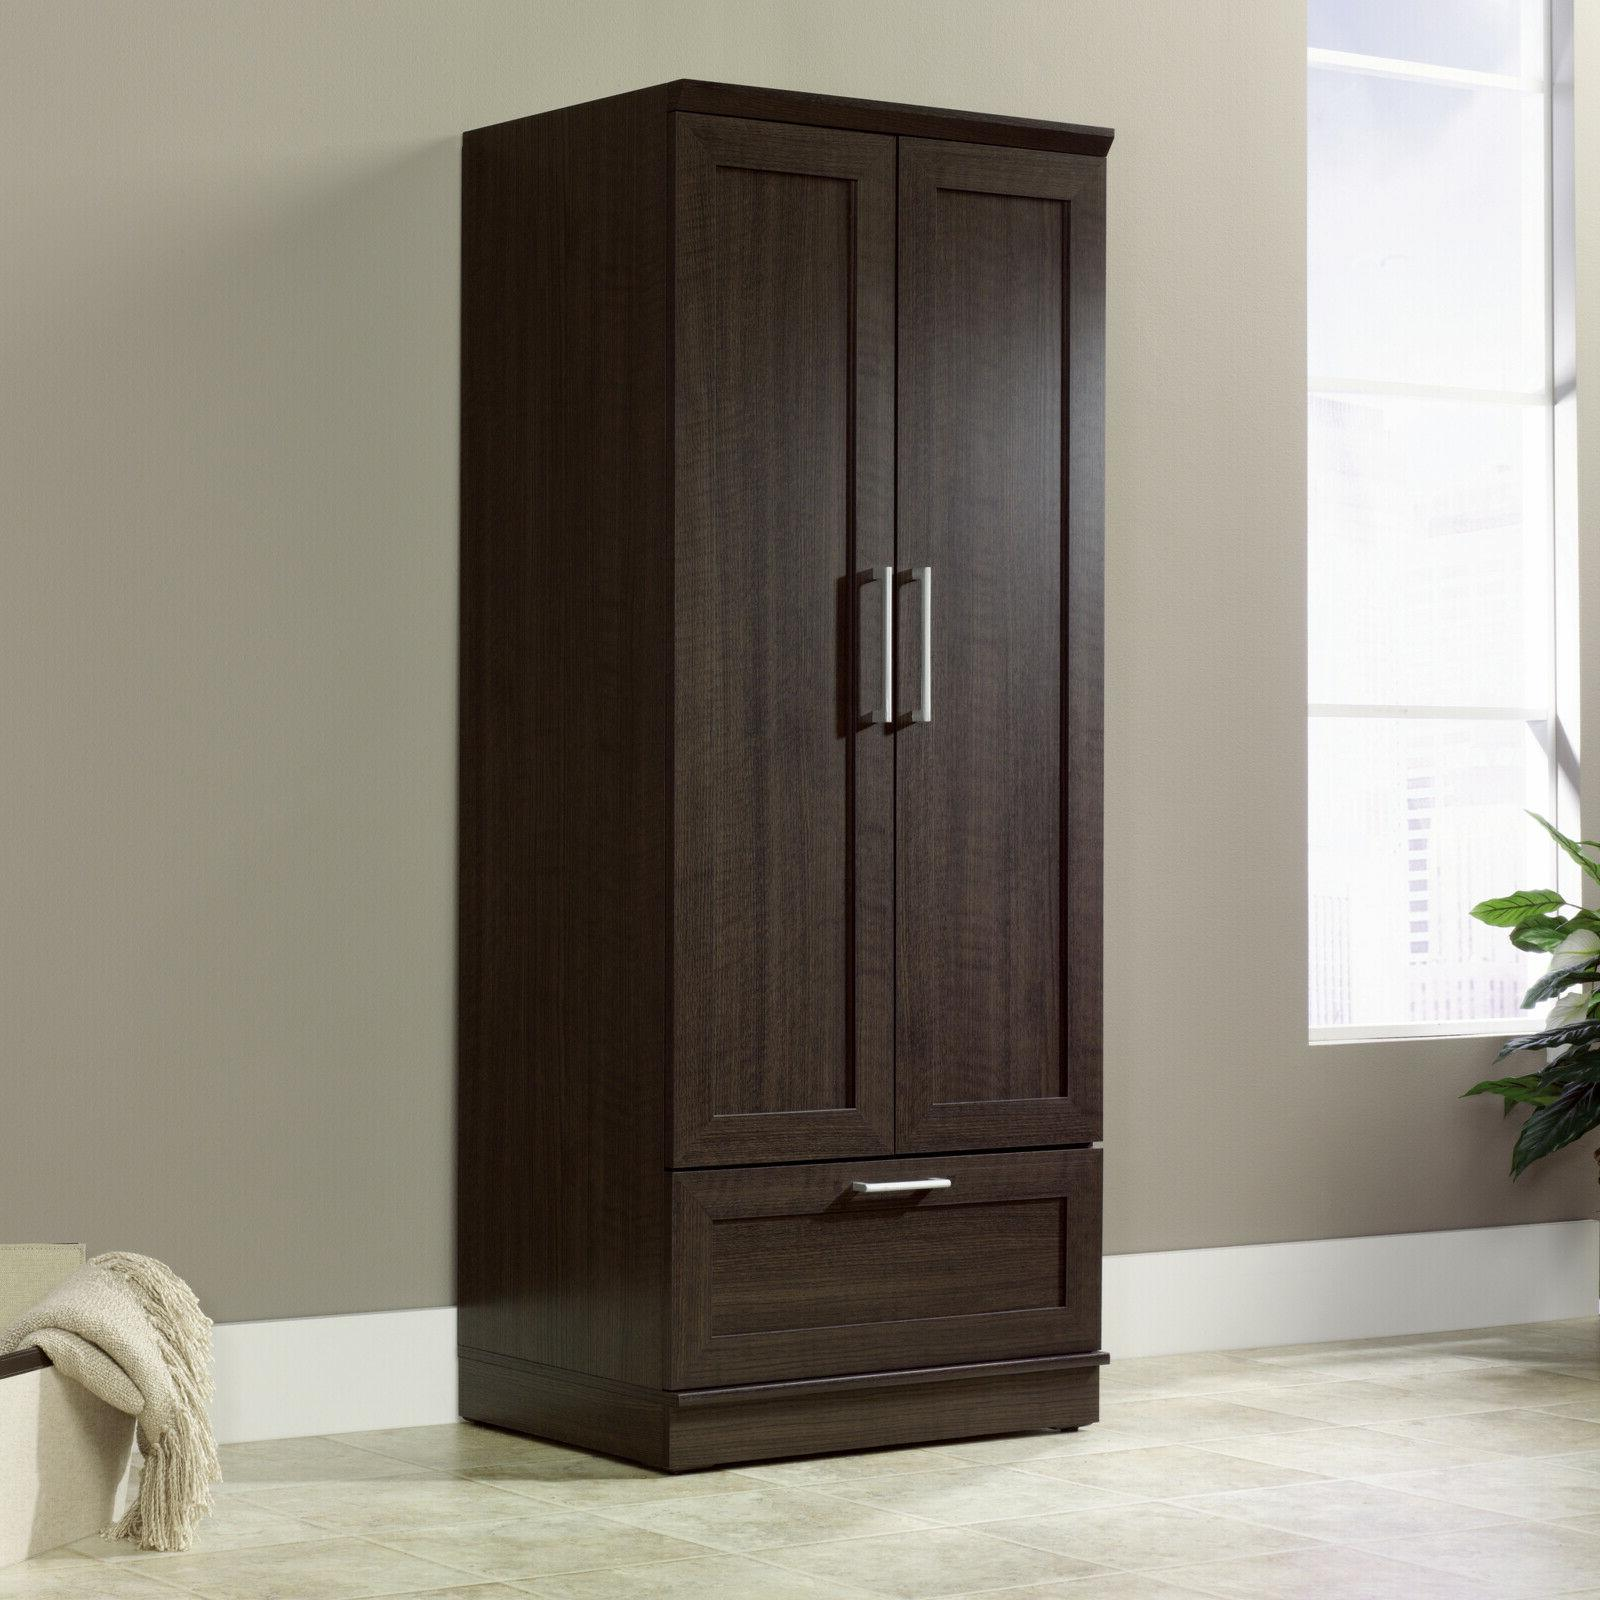 Armoire Closet Organizer Bedroom Brown Oak